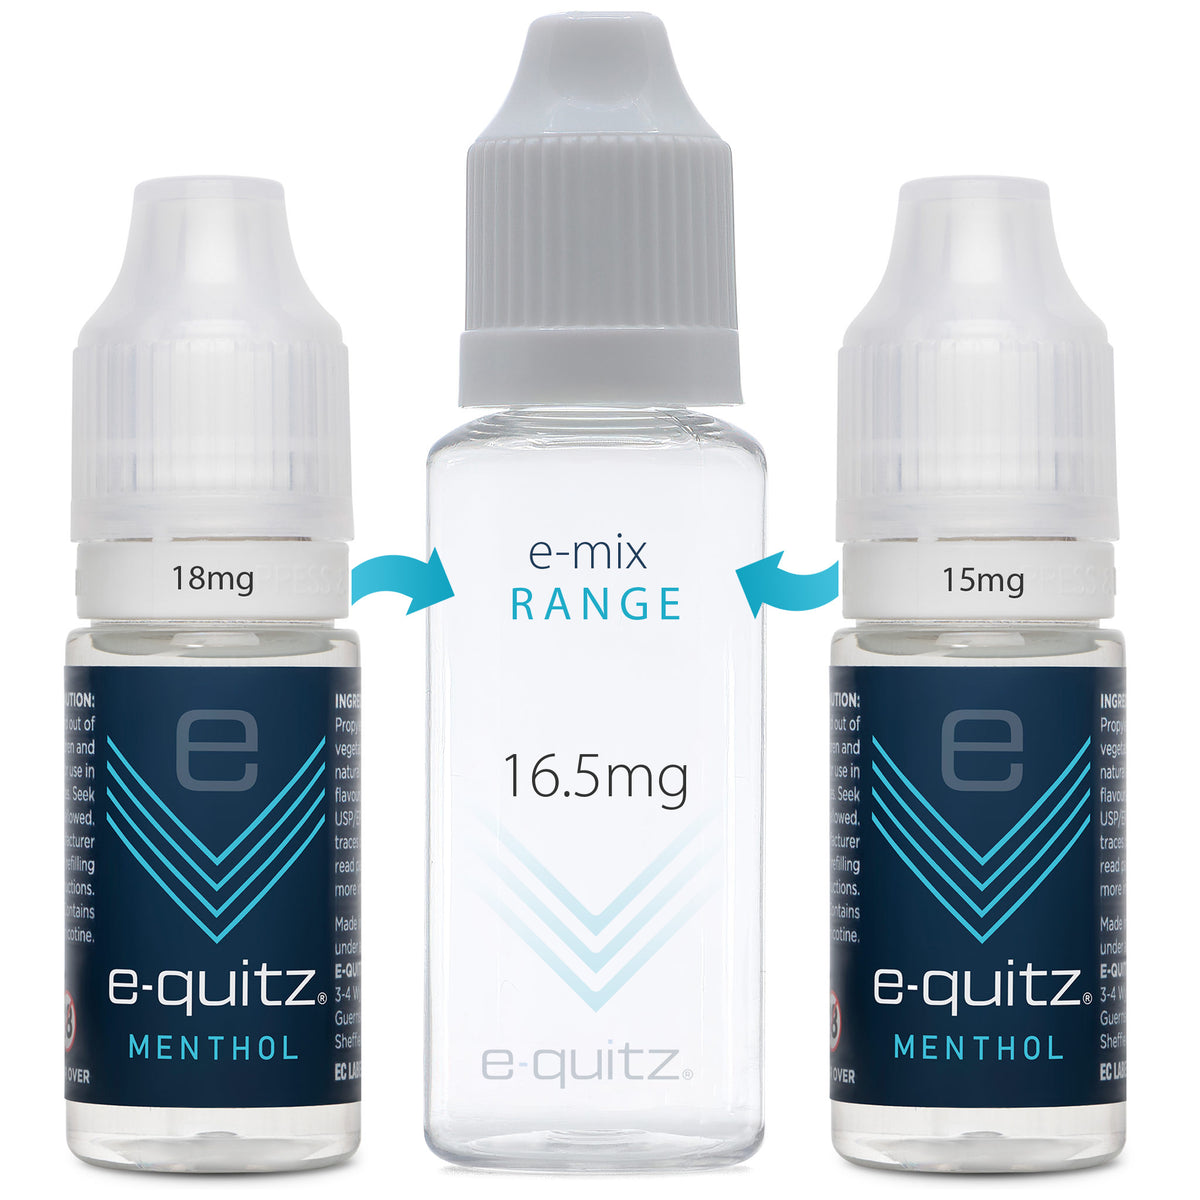 e-quitz 16.5mg menthol e-mix